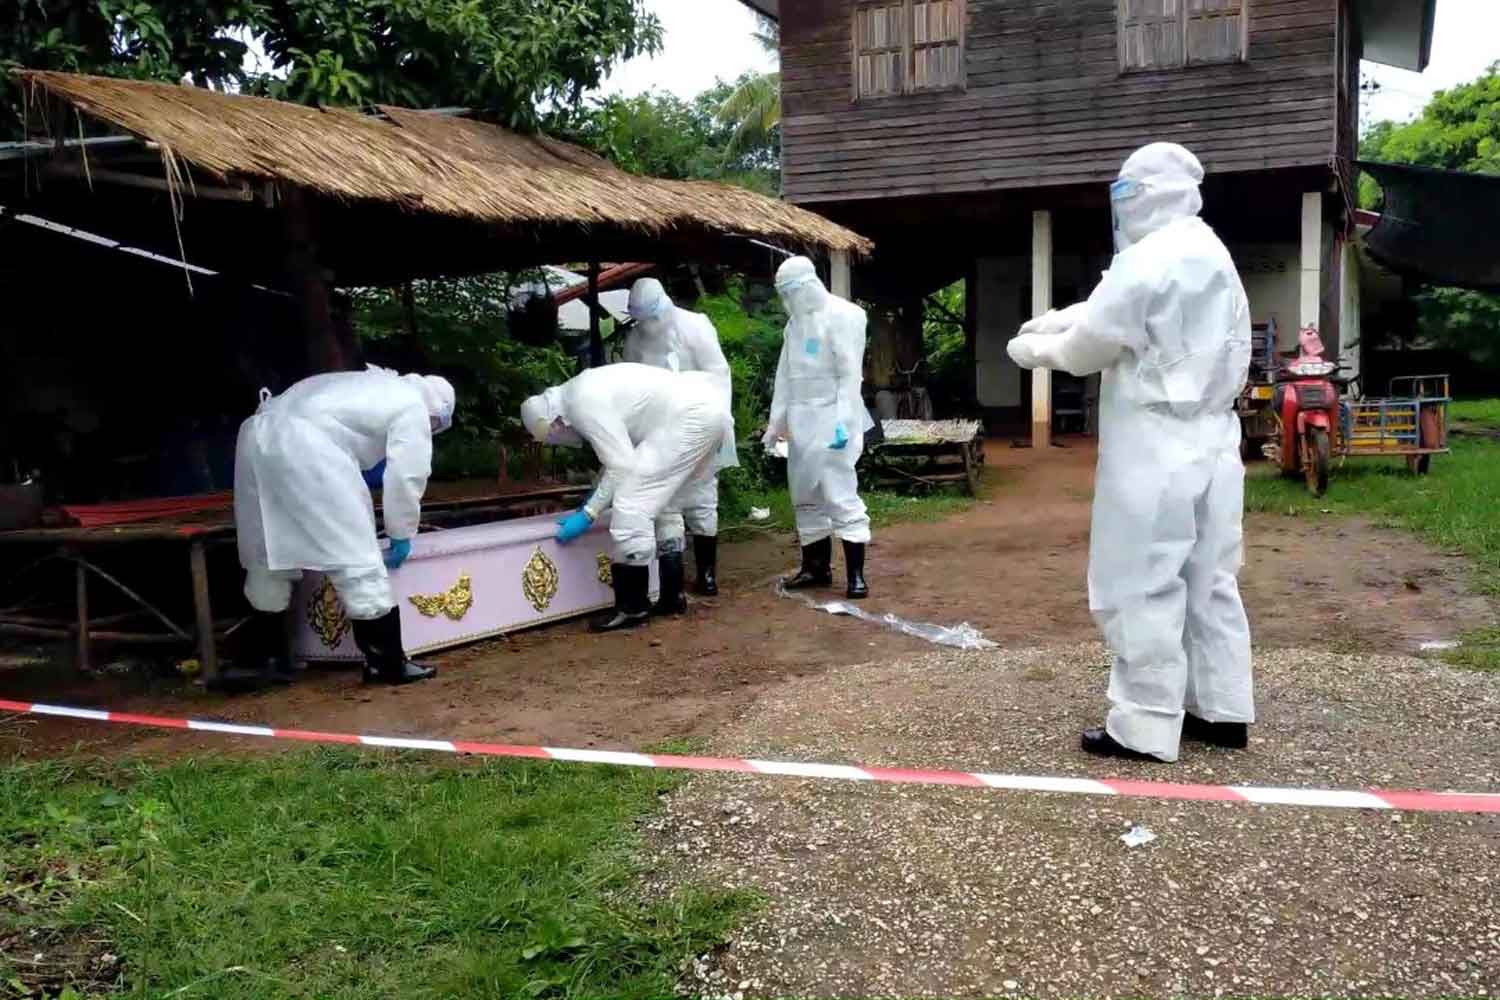 Medical staff in PPE suits from Hong Han Hospital in Udon Thani province place the body of the Lao man who died on Tuesday from an unknown cause in a coffin. A laboratory test will determine whether he died of Covid-19. (Photo: Yuttapong Kumnodnae)